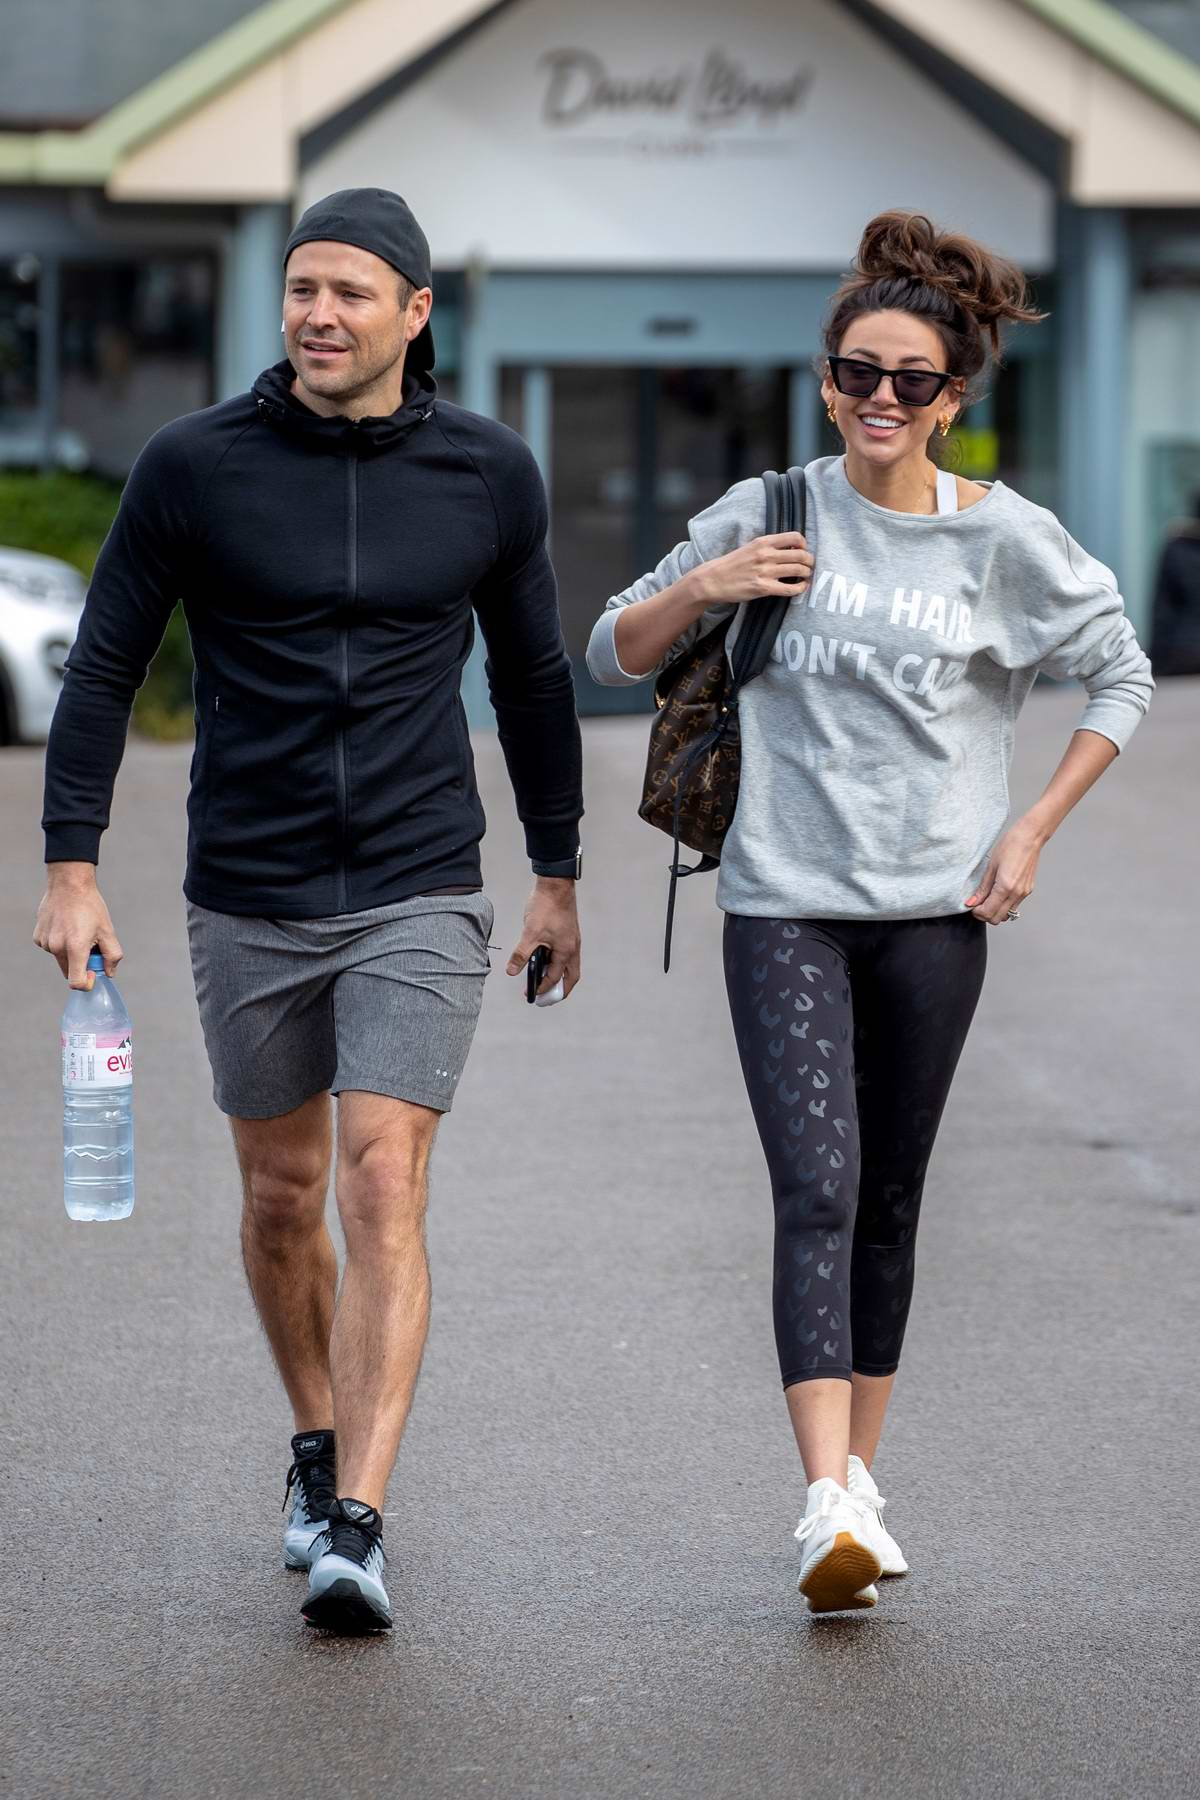 Michelle Keegan wears 'Gym Hair Don't Care' sweatshirt and leggings while heading to the Gym with Mark Wright in Essex, UK